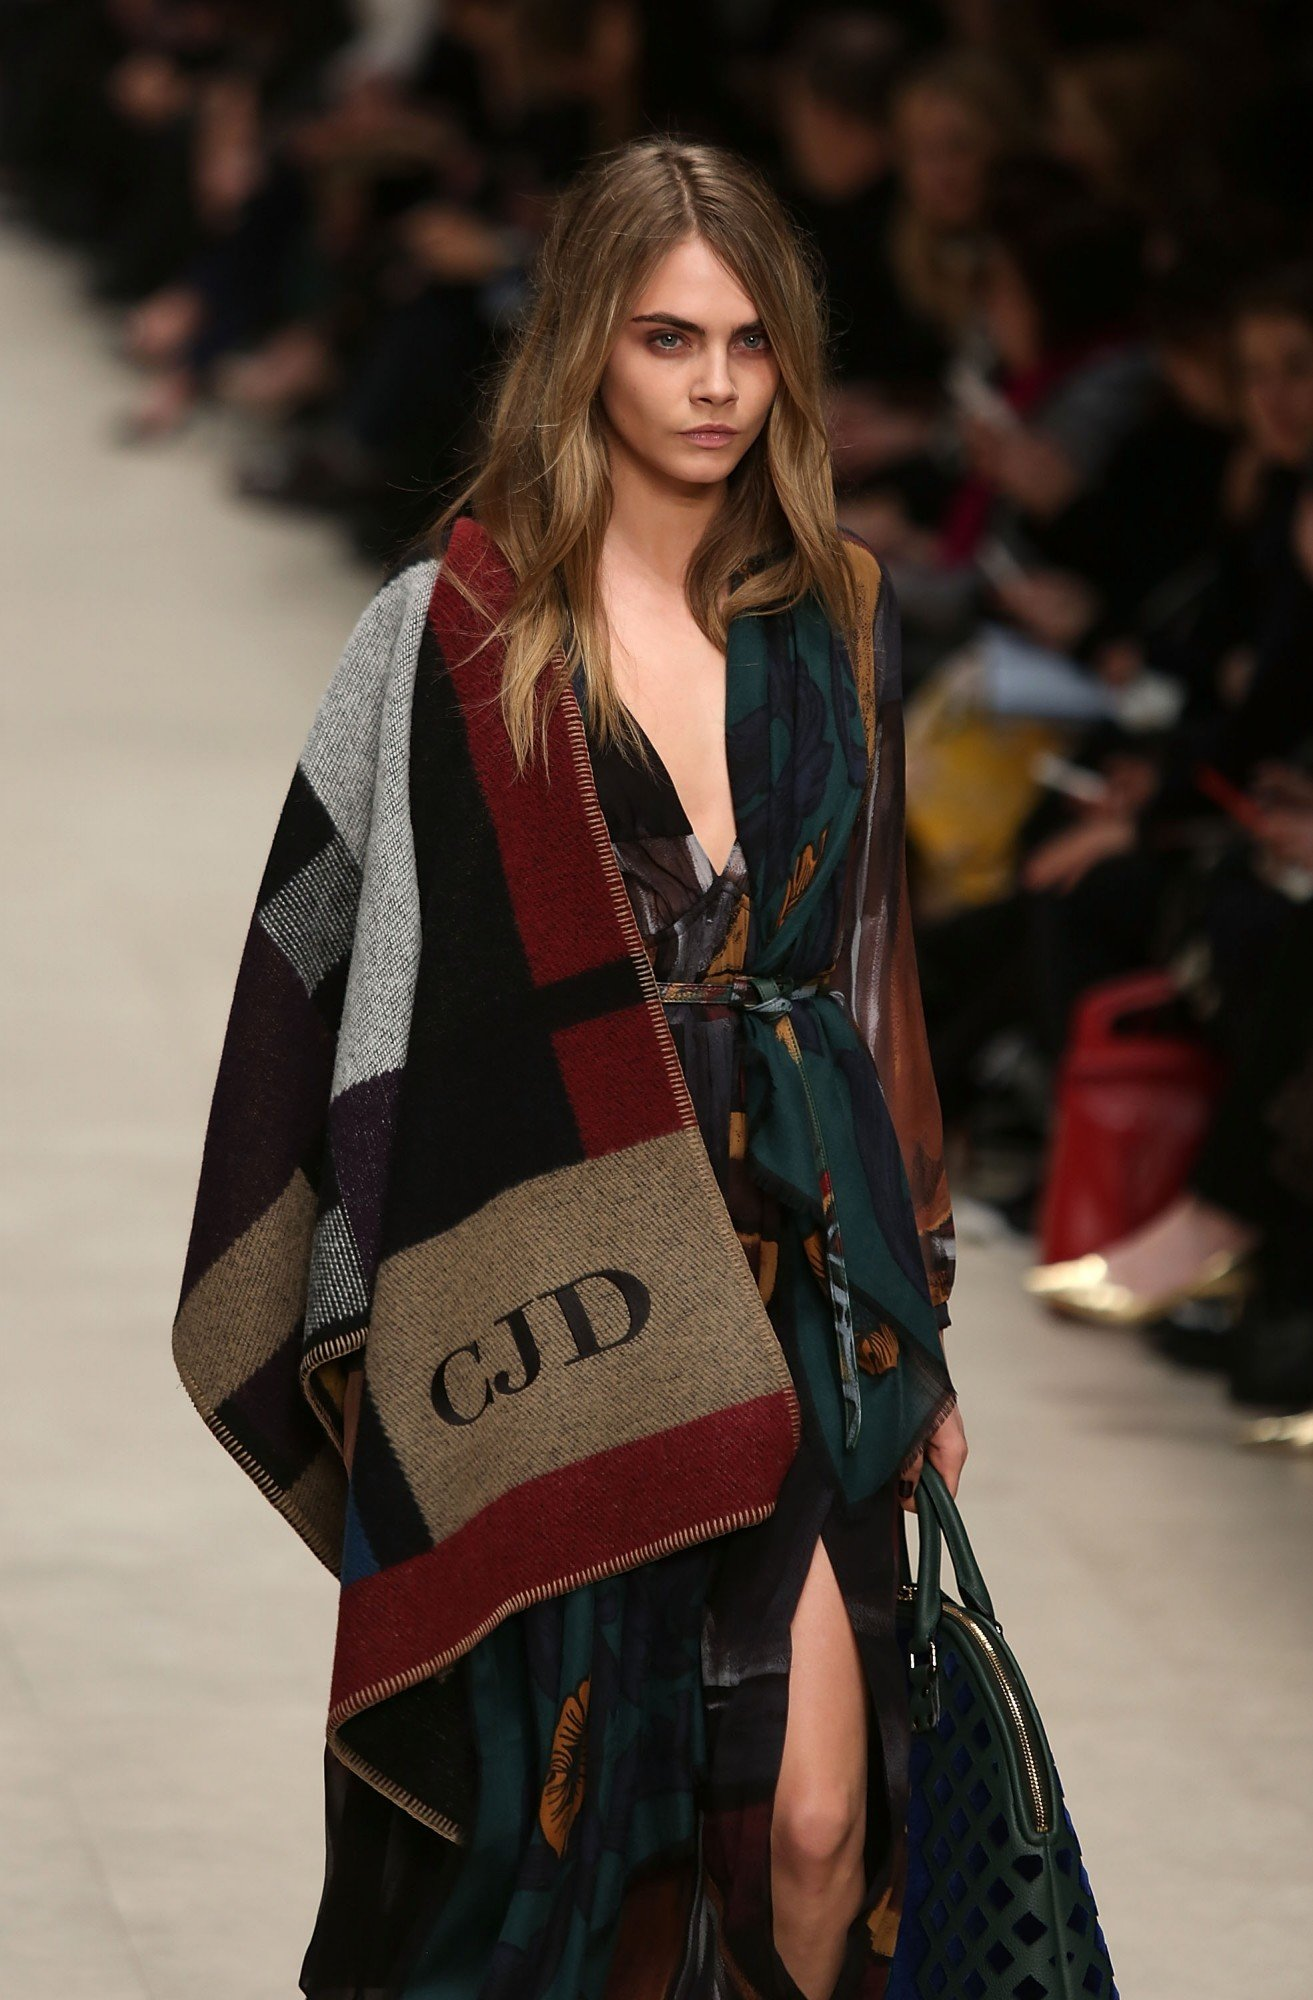 LONDON, ENGLAND - FEBRUARY 17: Model Cara Delevingne walks the runway at the Burberry Prorsum show at London Fashion Week AW14 at Perks Fields, Kensington Gardens on February 17, 2014 in London, England. (Photo by Tim P. Whitby/Getty Images)